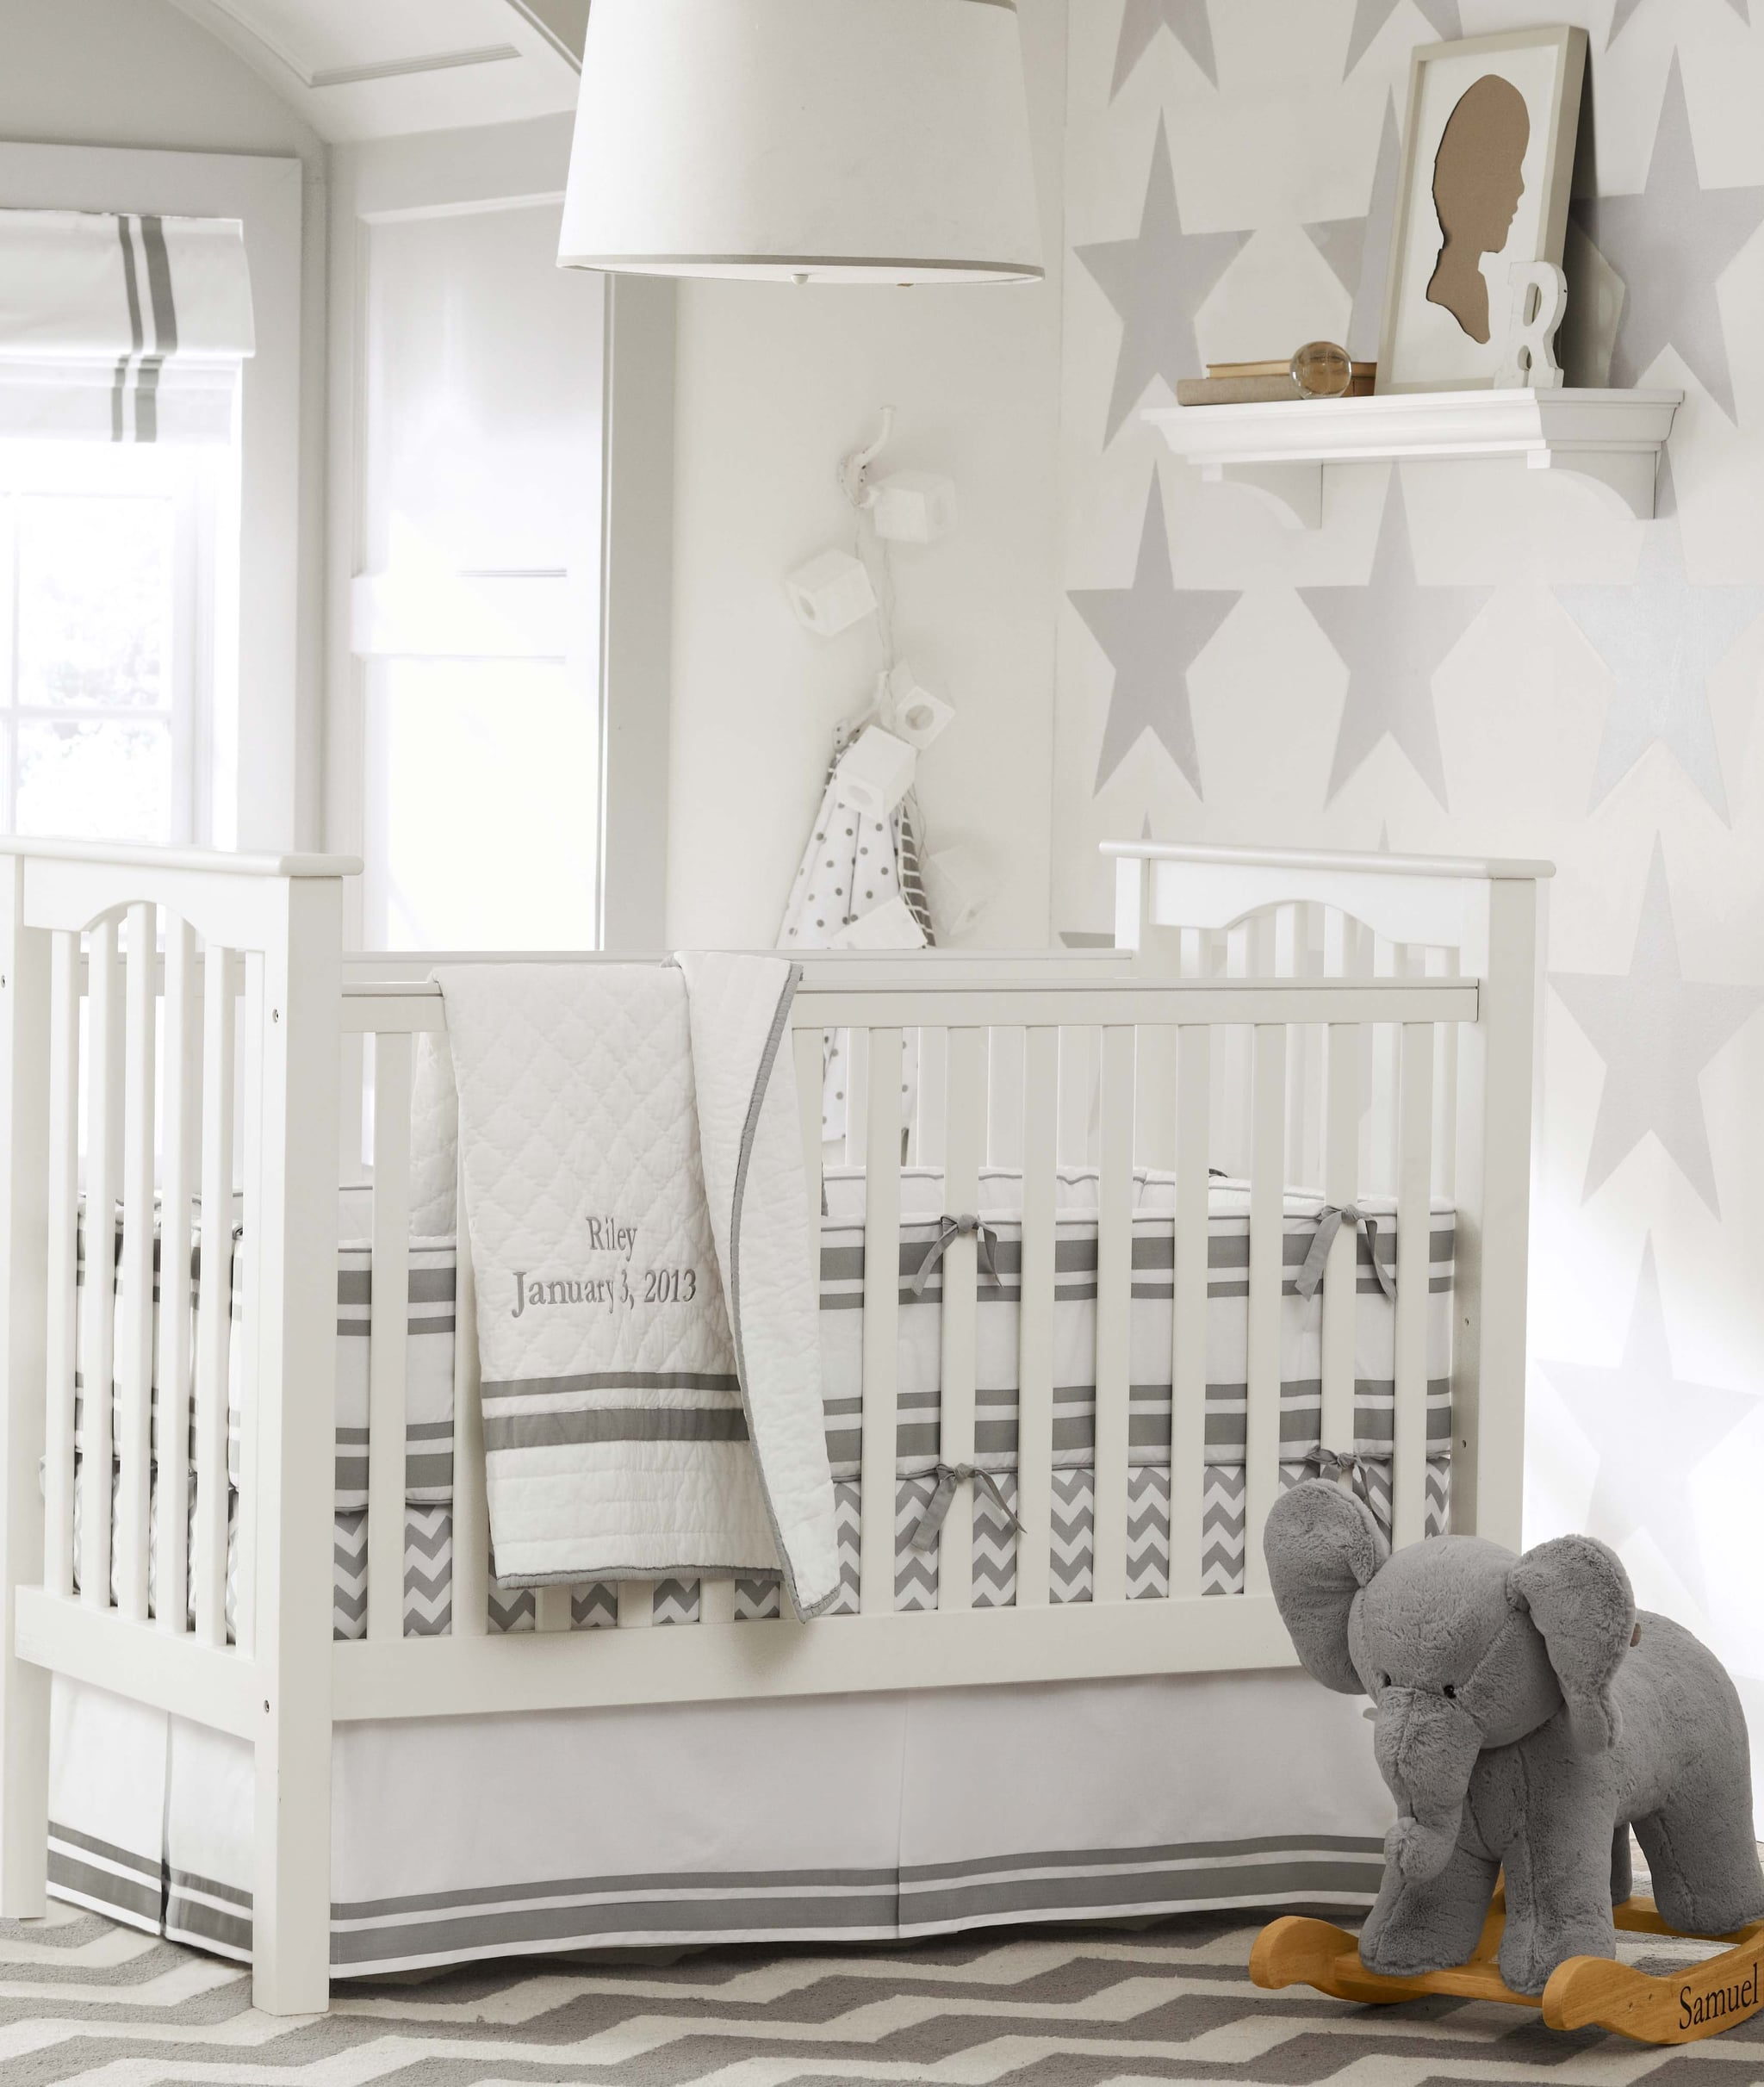 Stargazing in a pottery barn kids room 18 inspiring for Pottery barn kids rooms